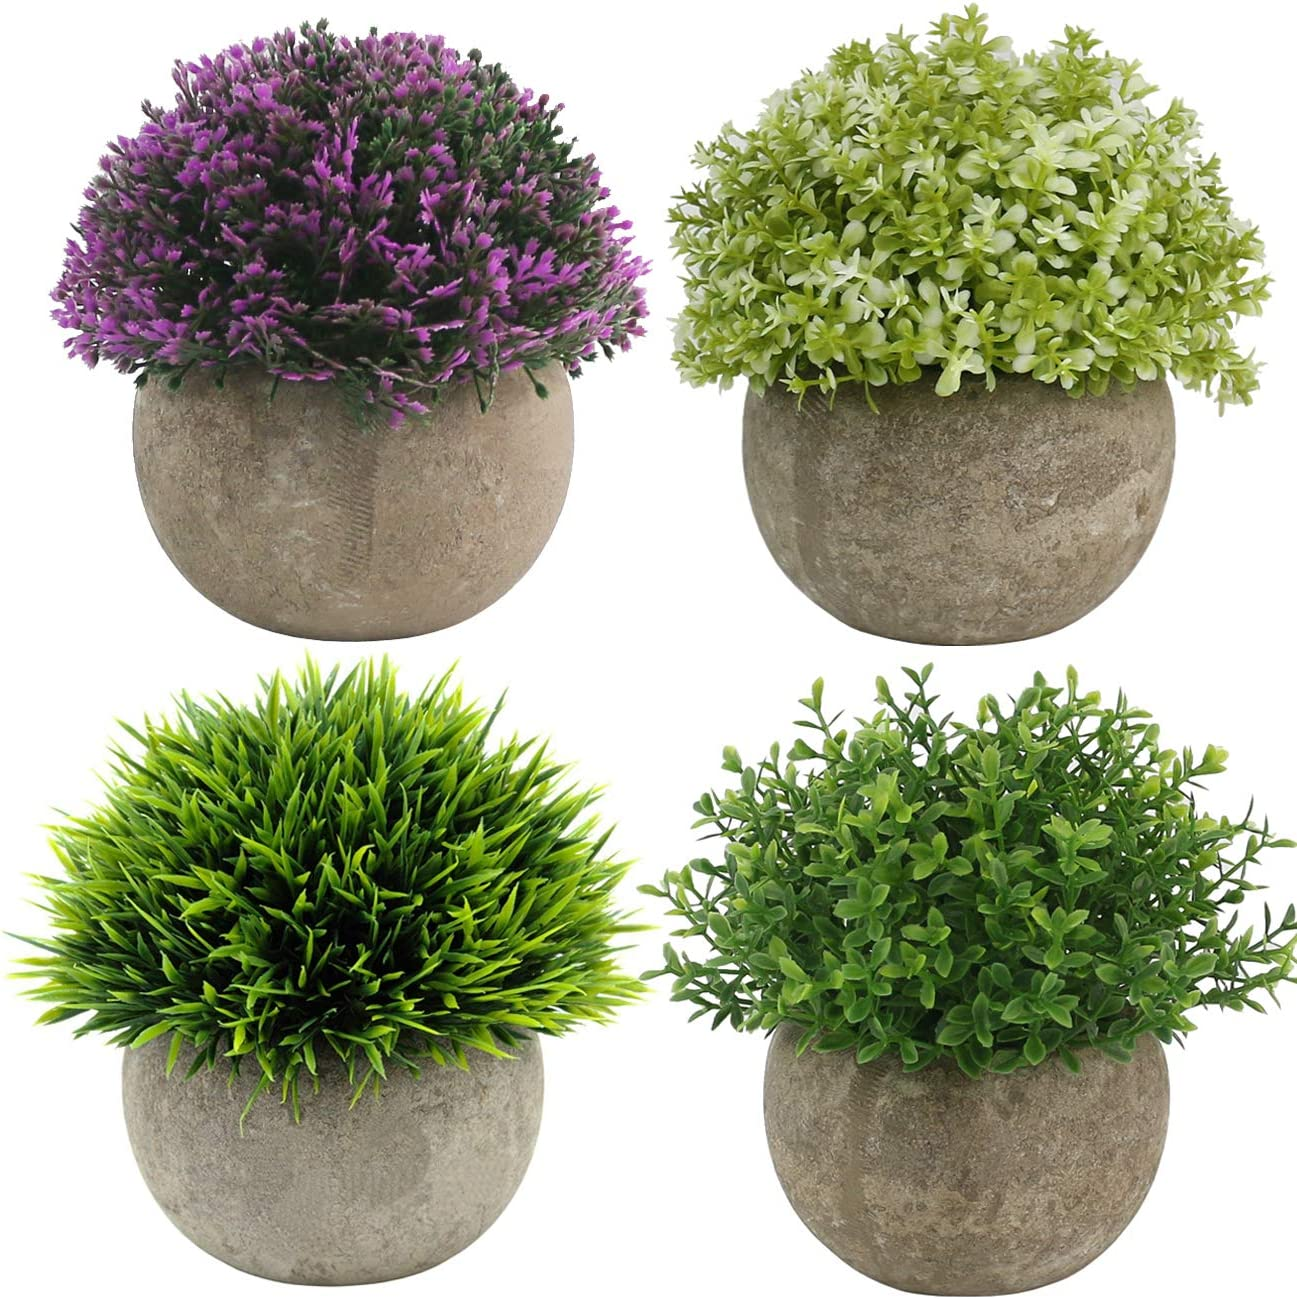 Ogrmar 4PCS Mini Plastic Artificial Plants Grass in Pot/Small Artificial Faux Greenery/Mini Plants Topiary Shrubs Fake Plants for Bathroom, House Decorations